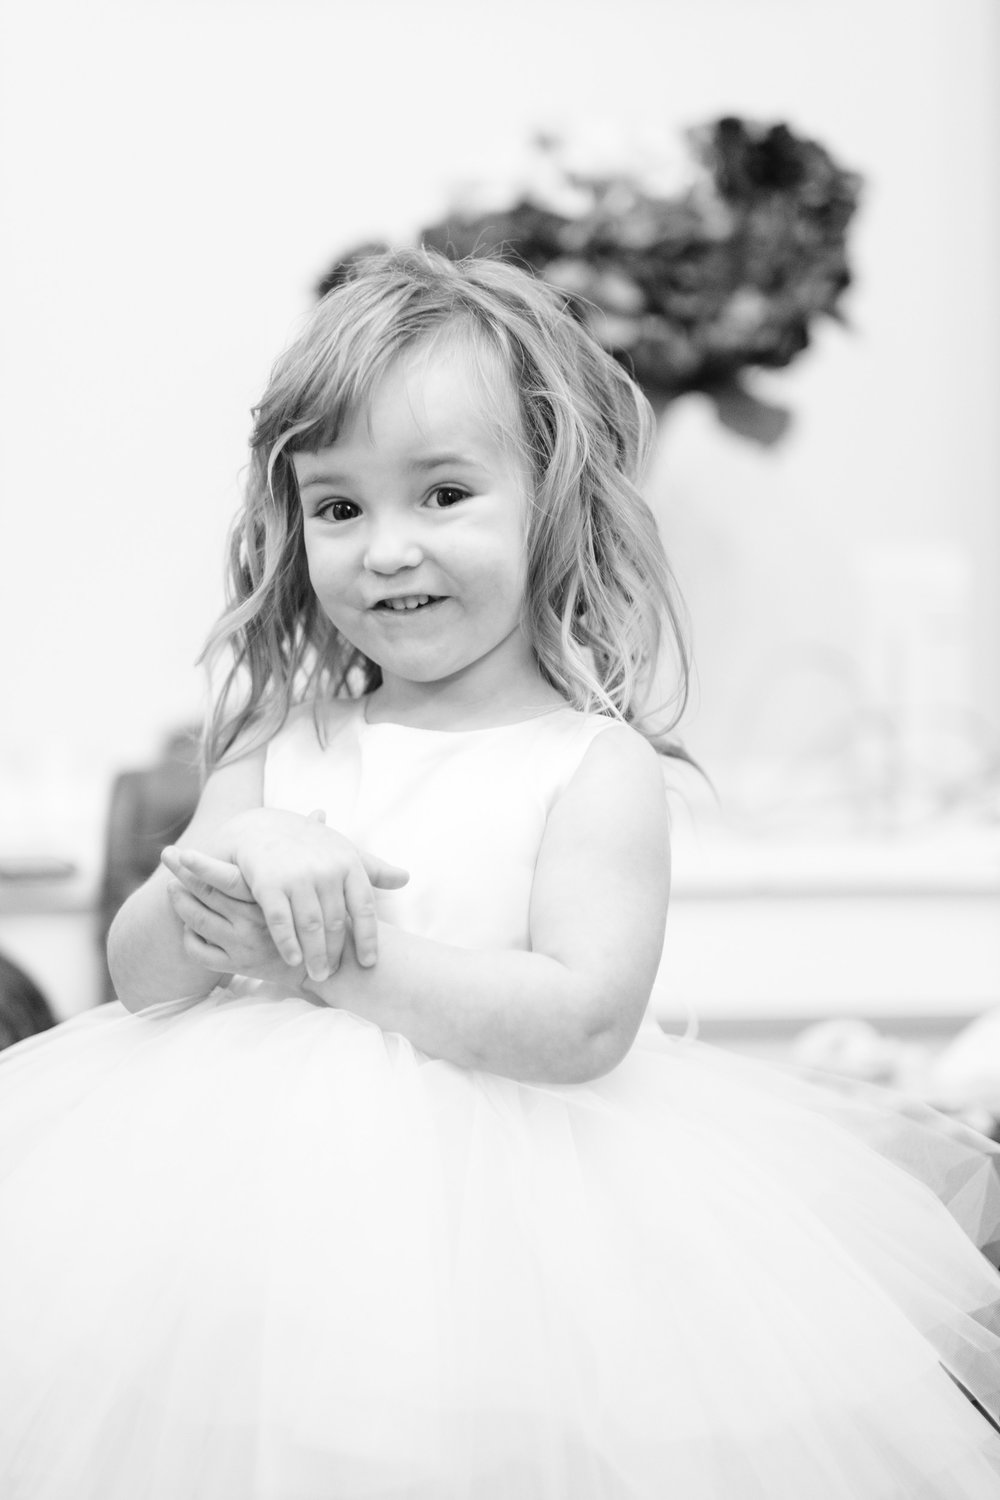 Flower girl smiling while looking at bride in her wedding dress in black and white at pabst best place in milwaukee, wi.